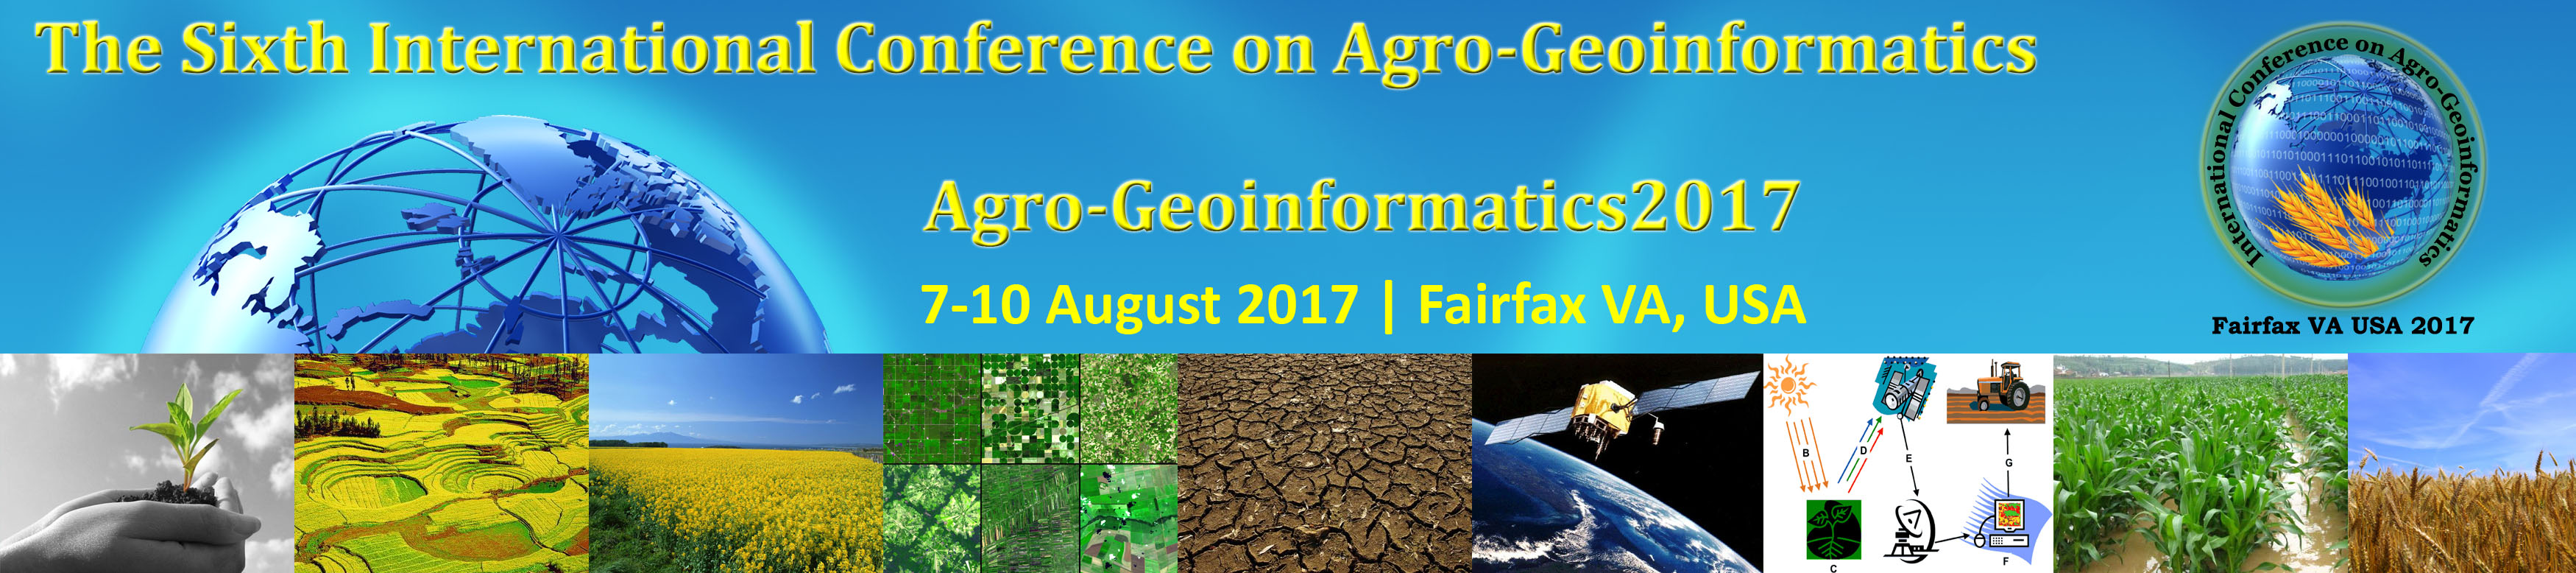 6th International Conference on Agro-Geoinformatics